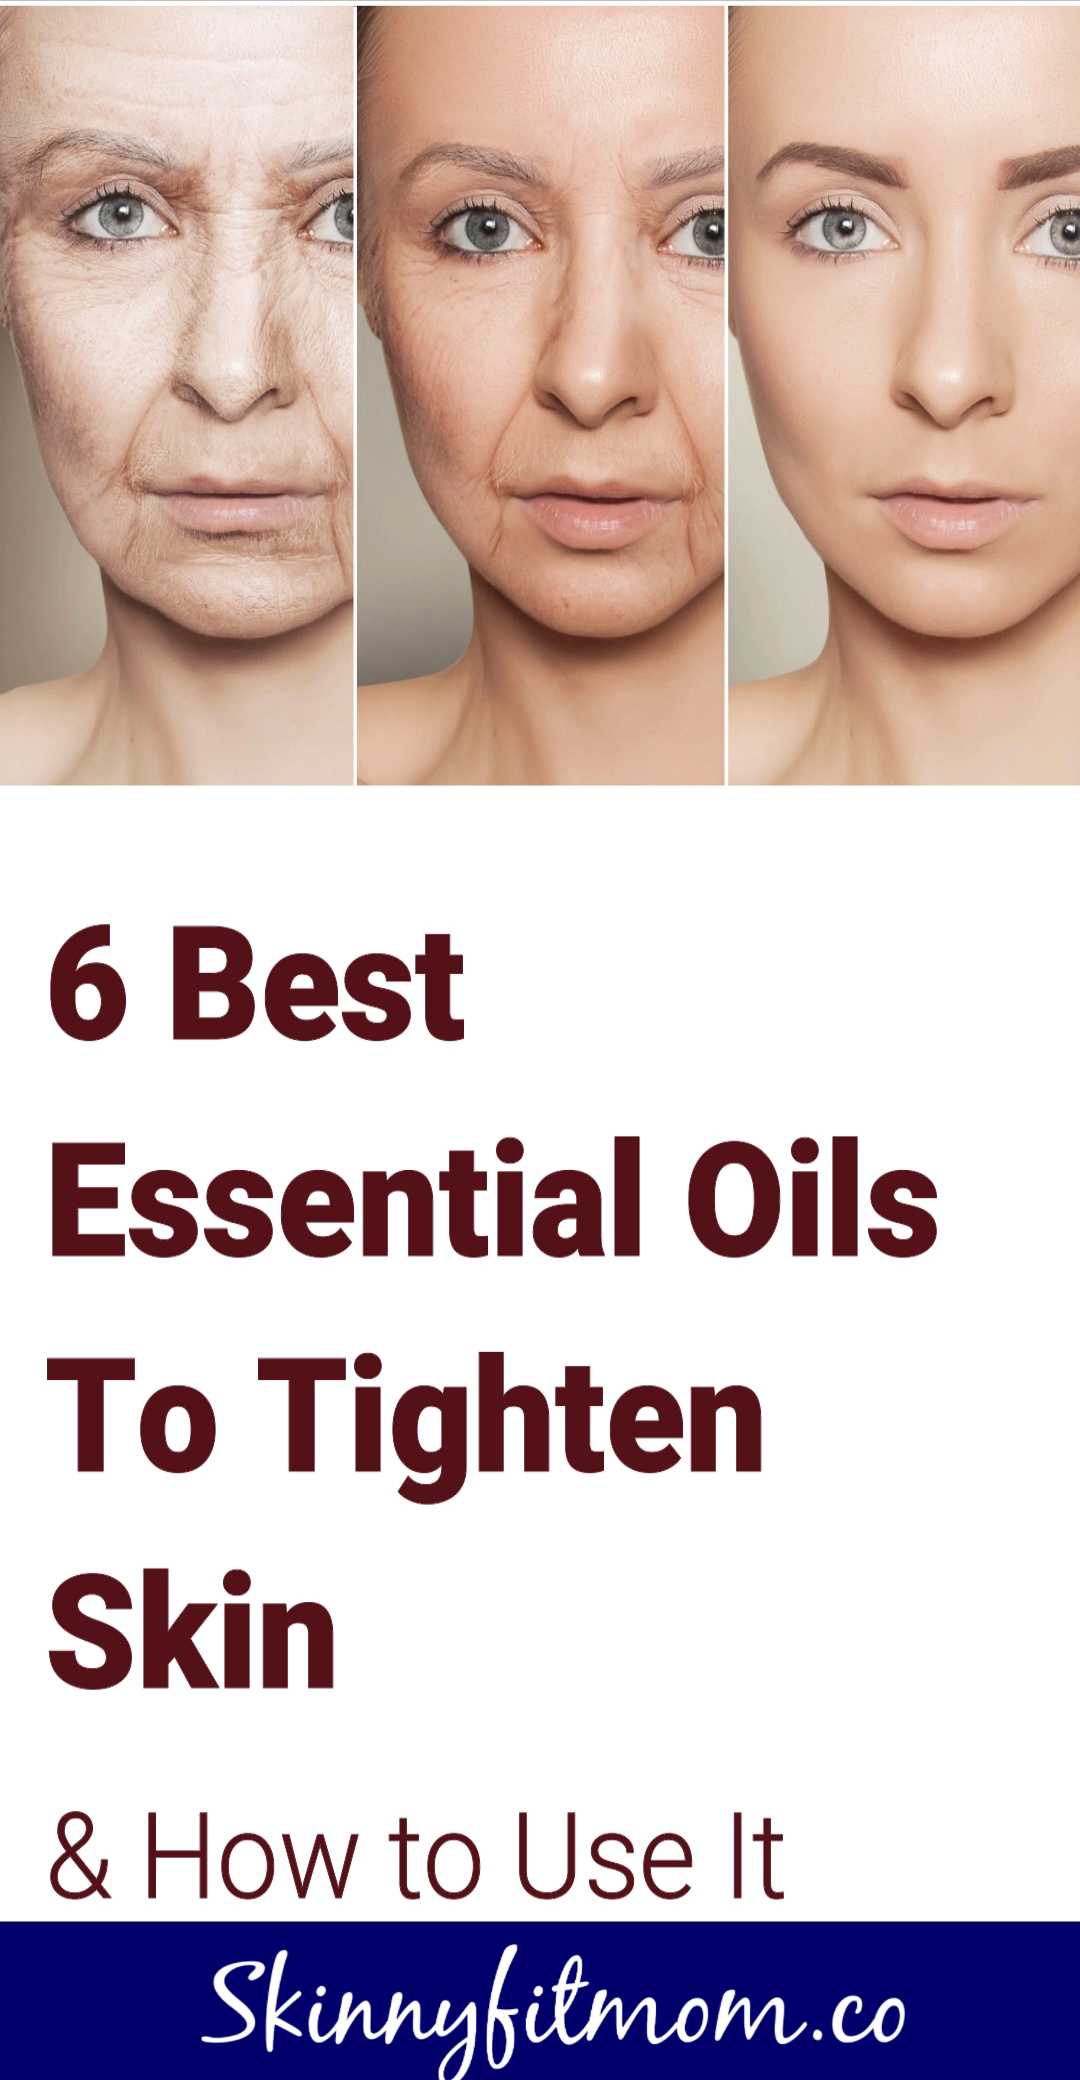 Get Rid of Saggy Skin with the Top Best Essential Oils to Tighten Skin